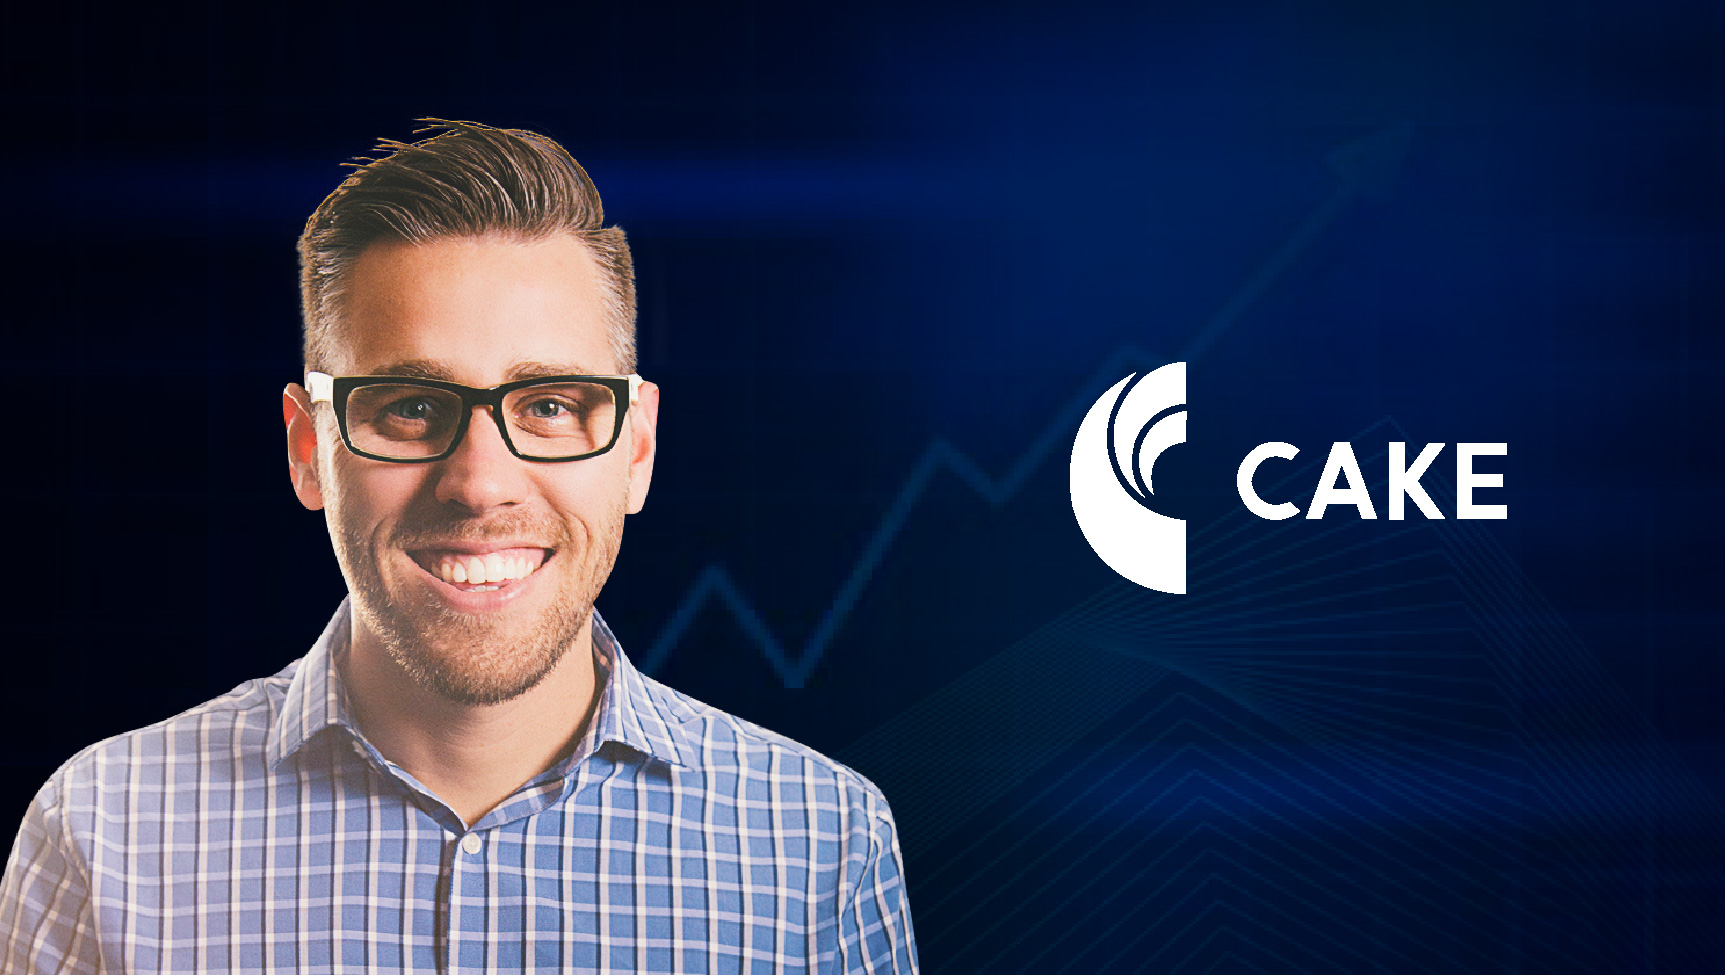 SalesTech Star Interview with Garth Harris, VP of Operations at CAKE